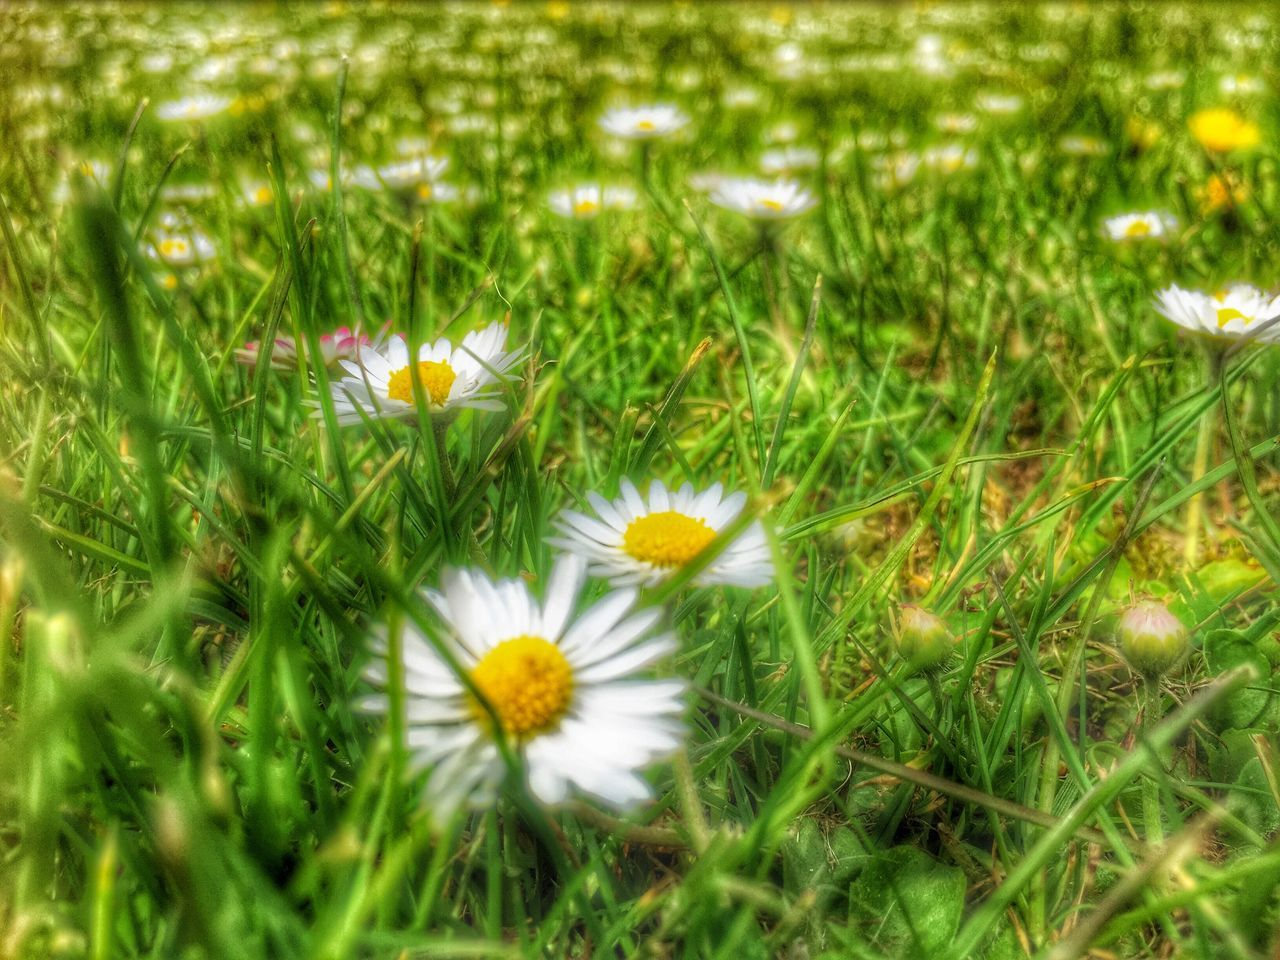 flower, grass, growth, nature, field, petal, beauty in nature, freshness, flower head, delicate, fragility, blooming, plant, uncultivated, no people, outdoors, close-up, day